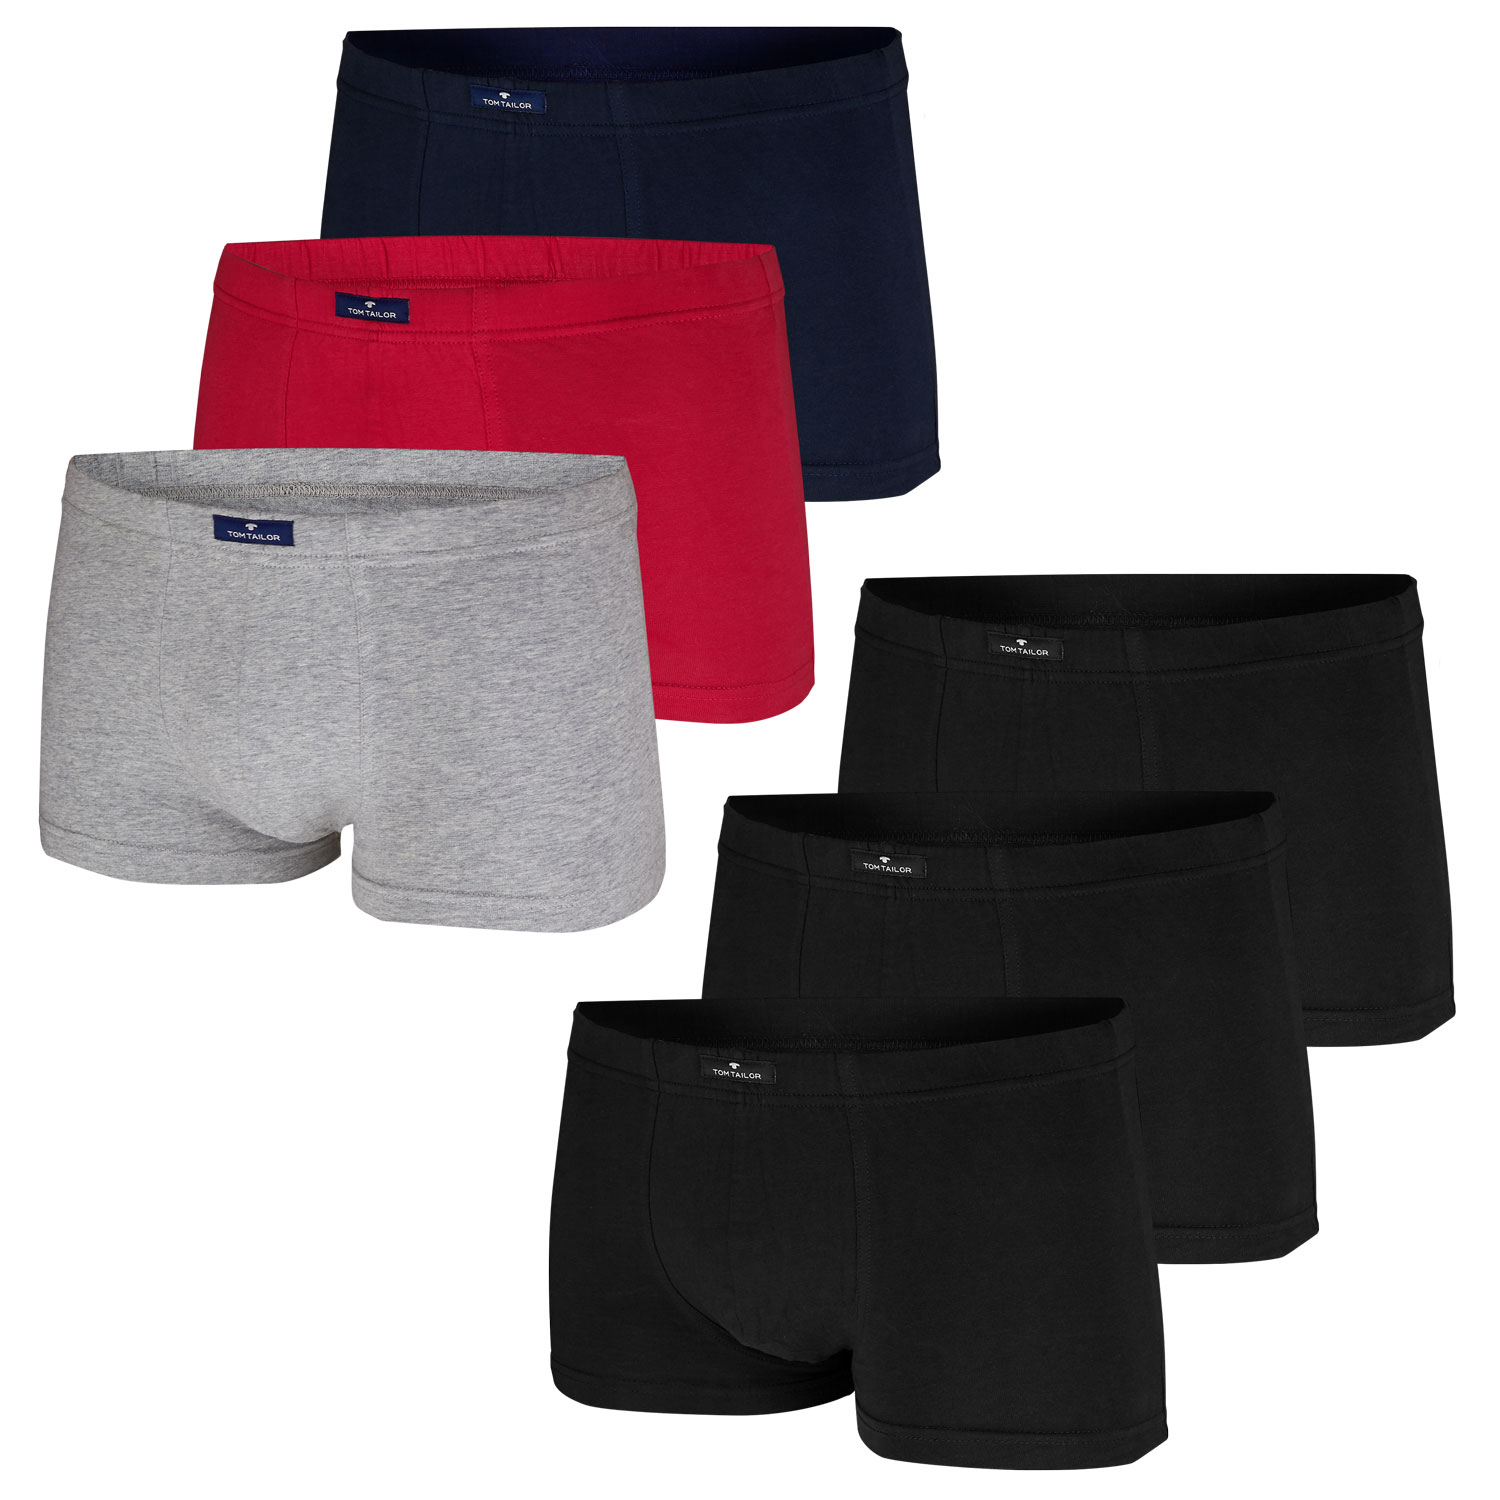 Tom Tailor Boxershorts 3er Pack 8710  – Bild 1